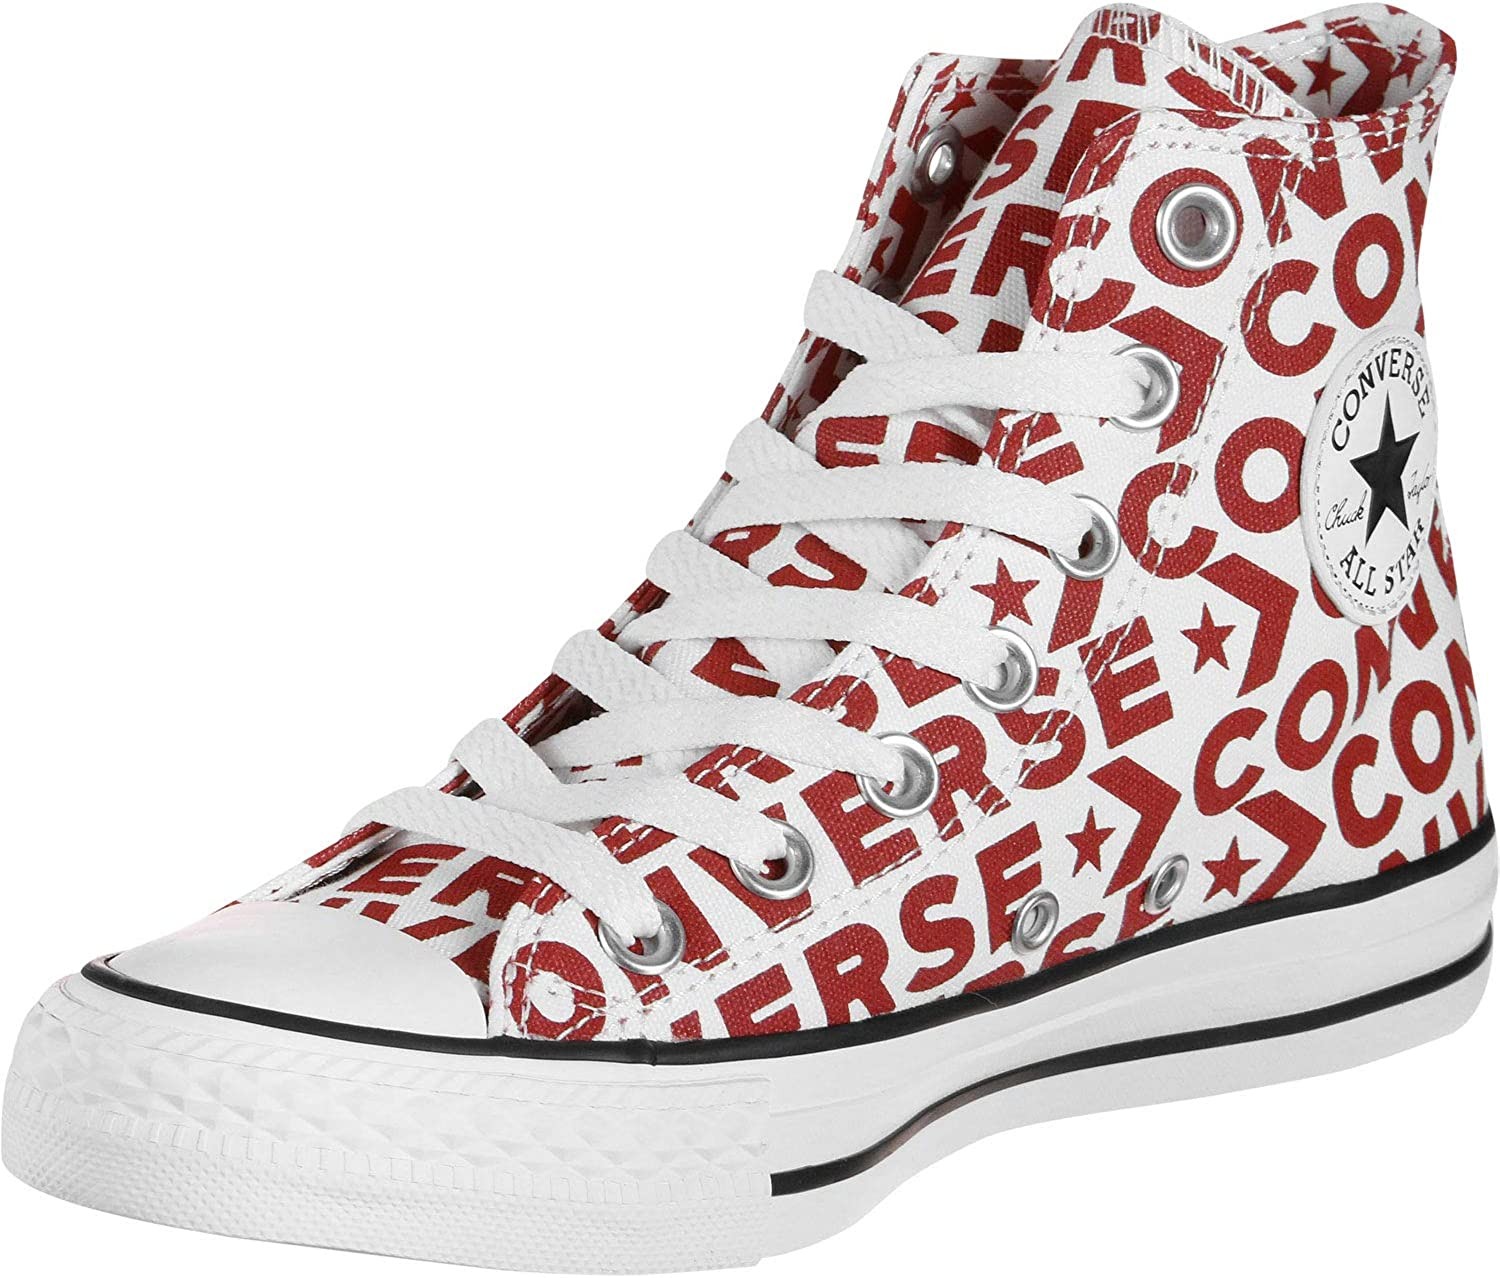 Converse All Star Hi shoes Optical White red